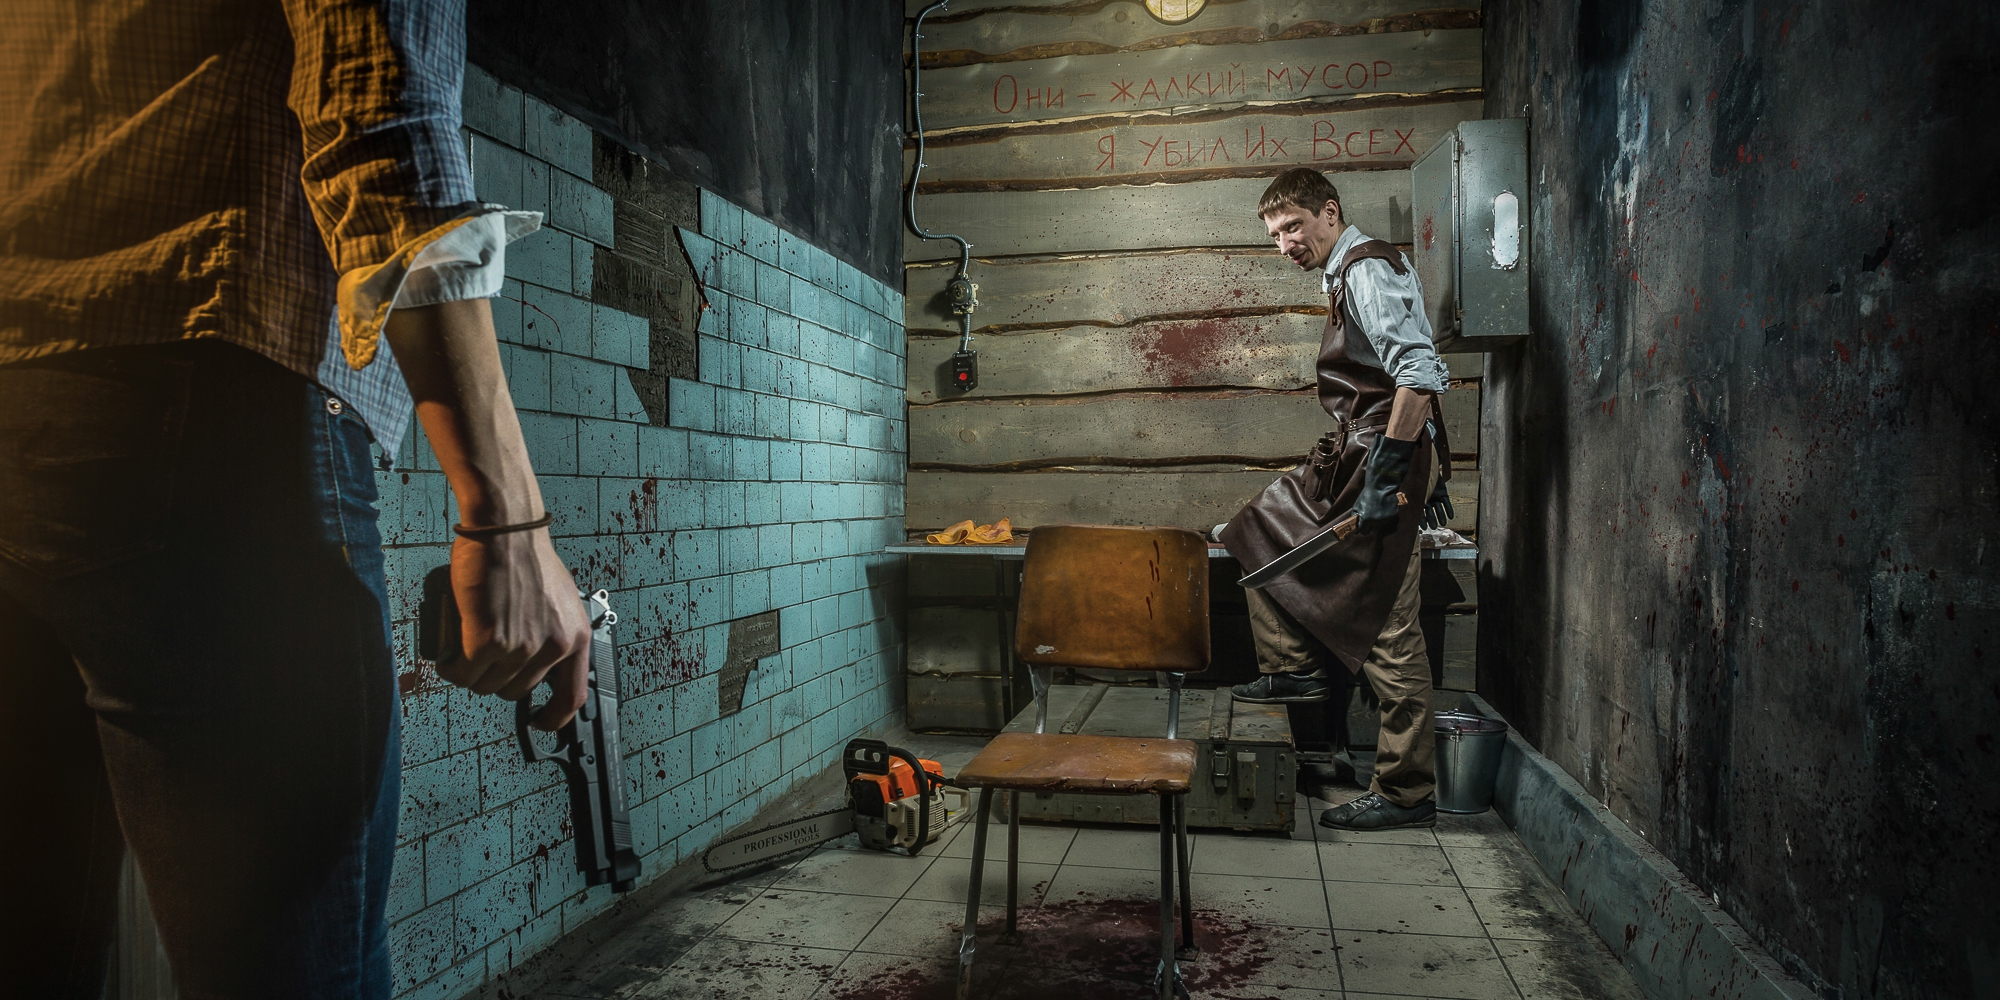 Фотография квеста «The Hostel. Torture cellar»